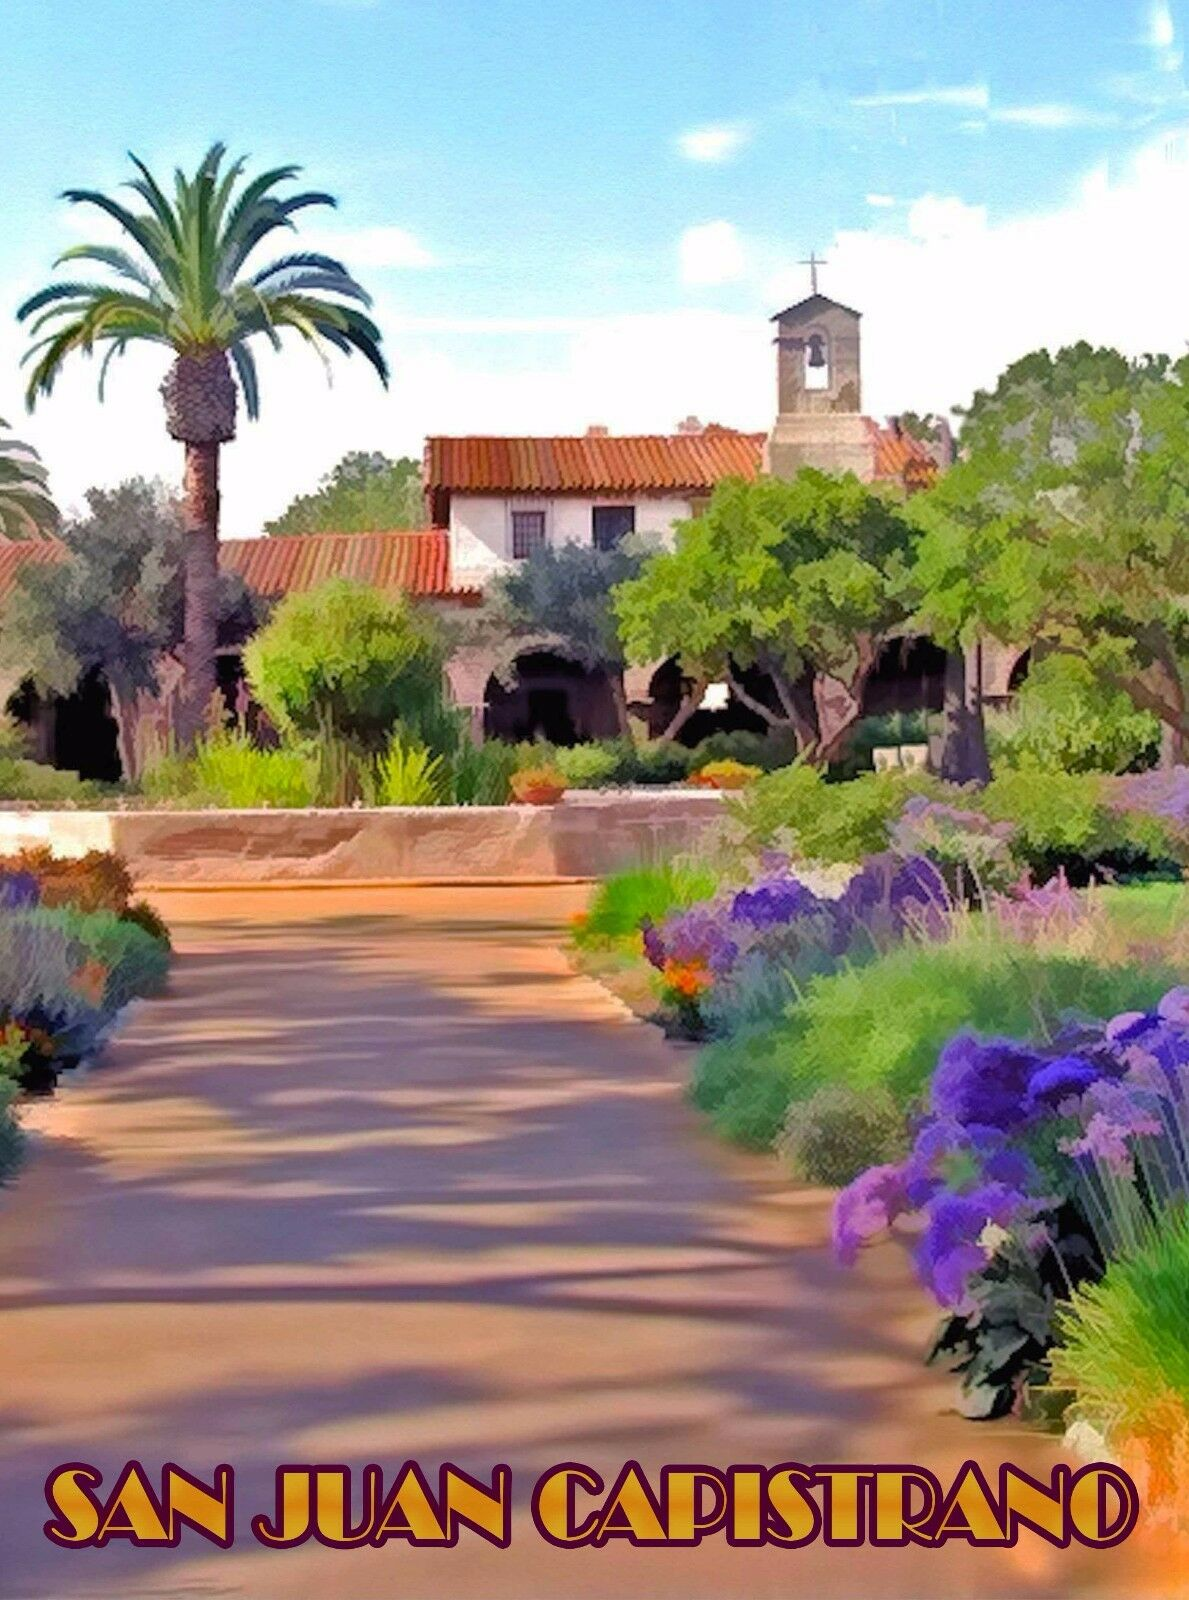 San Juan Capistrano (CA) United States  City pictures : San Juan Capistrano California United States Travel Advertisement Art ...